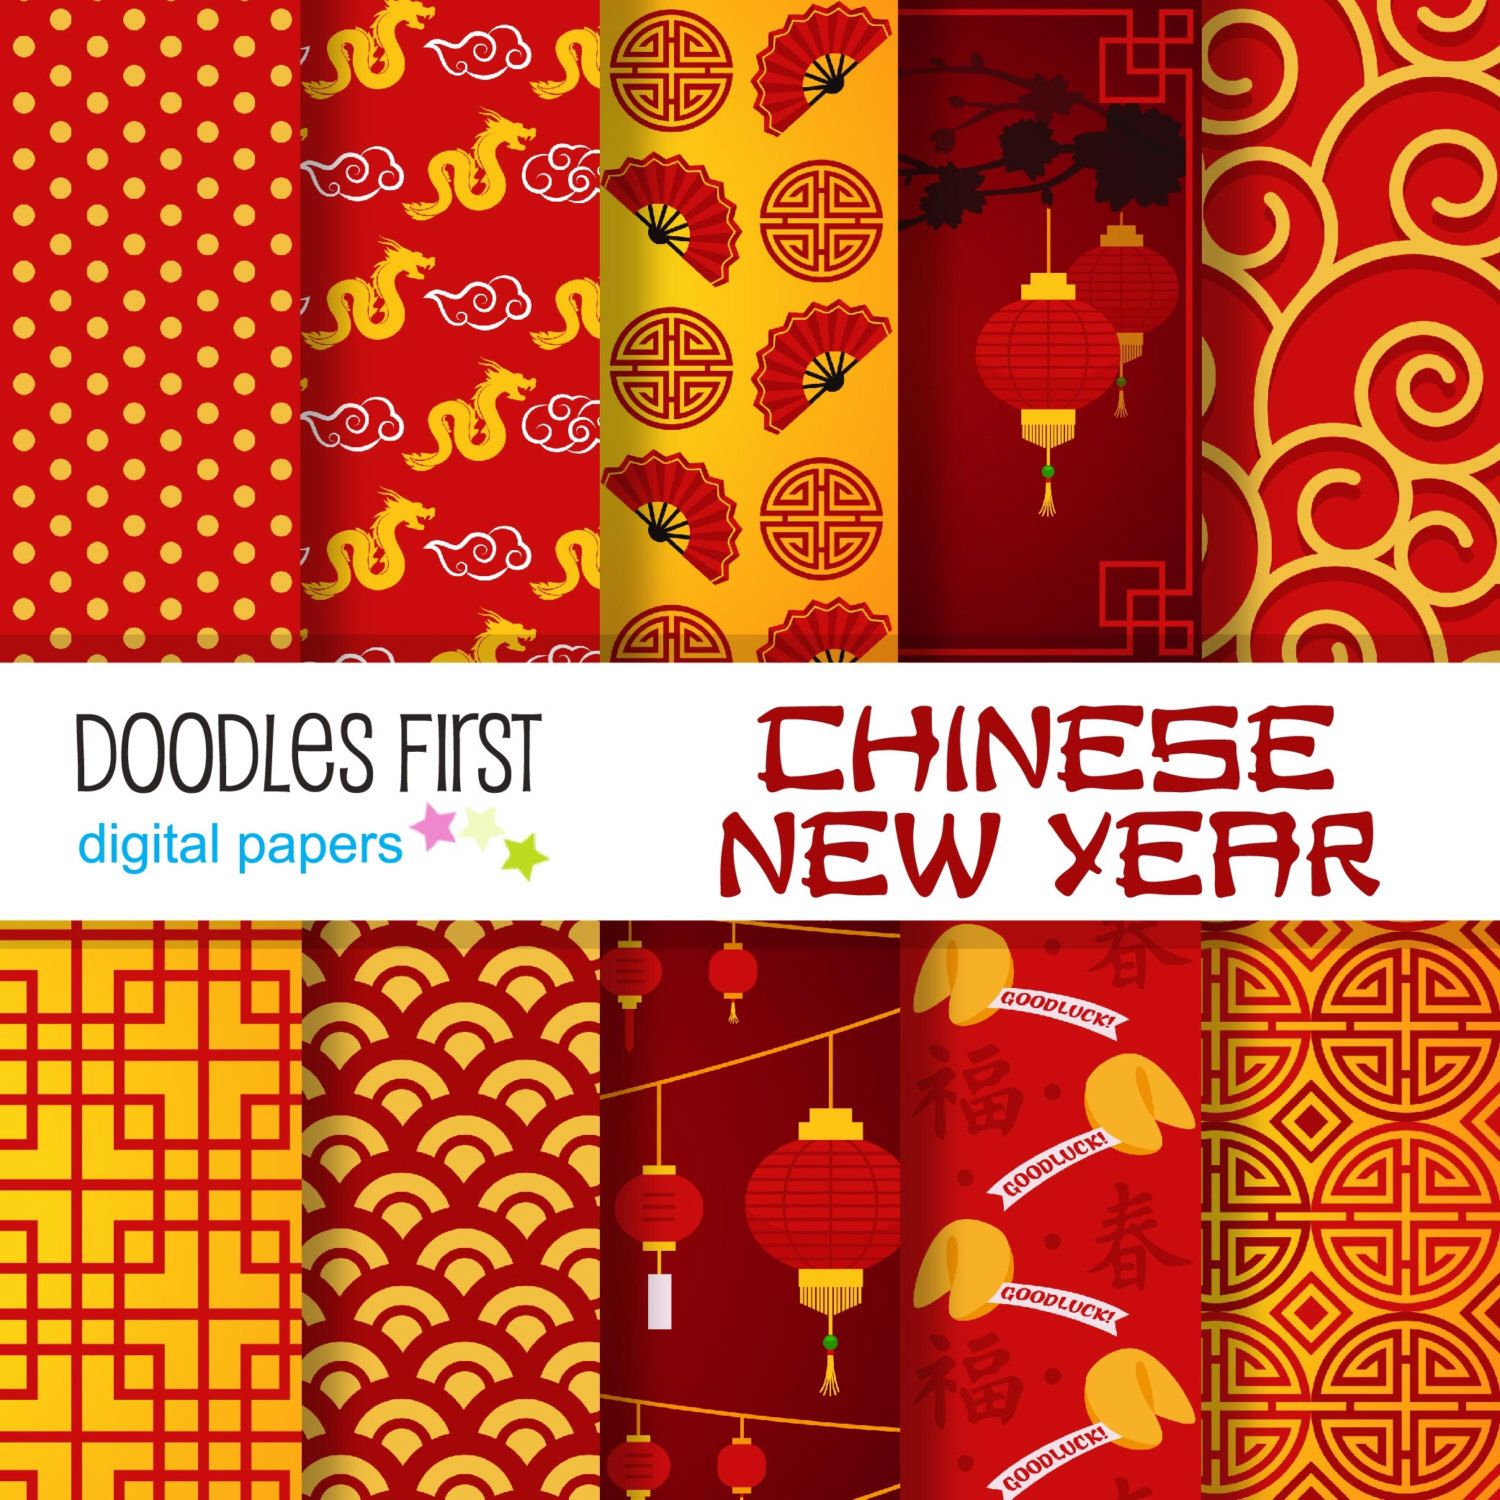 Chinese new year digital paper pack includes 10 for scrapbooking chinese new year digital paper pack includes 10 for scrapbooking paper crafts by doodlesfirst on etsy jeuxipadfo Choice Image